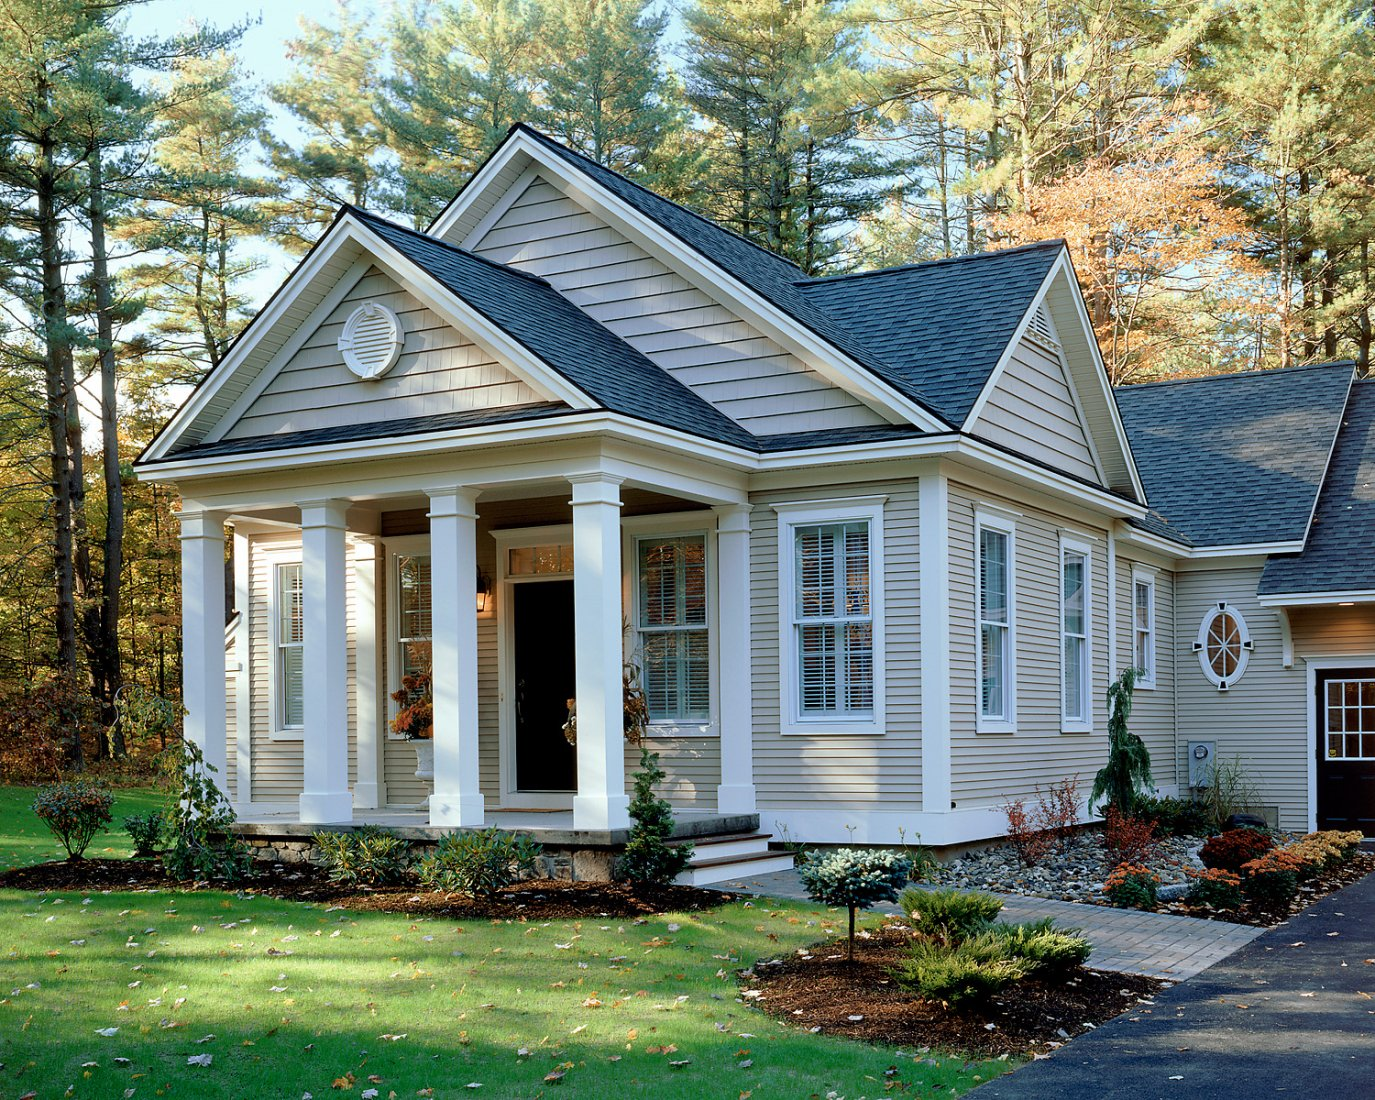 sell your house 7 tips to sell your home fast